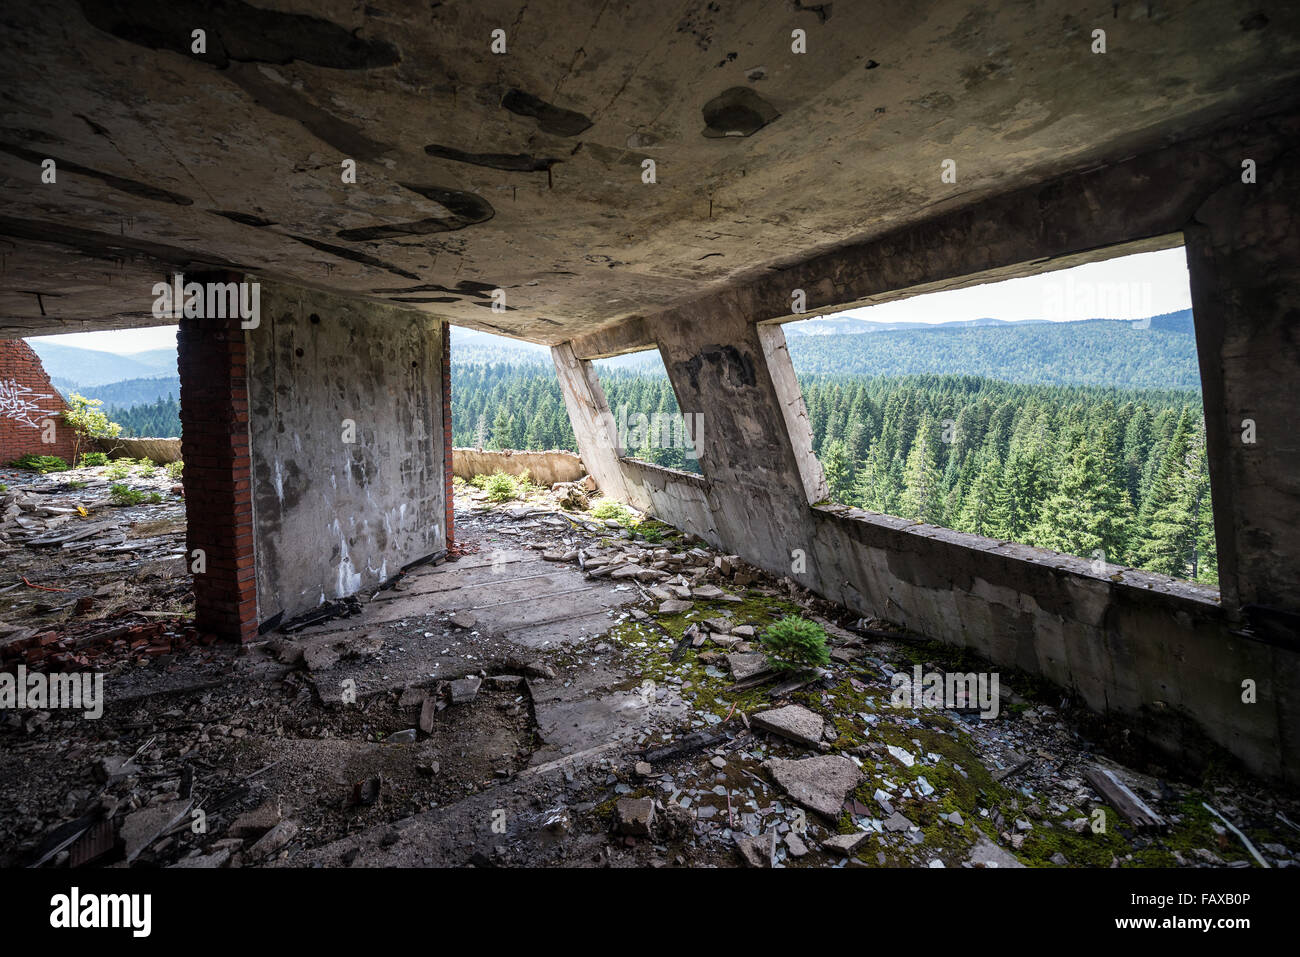 interior of Igman Hotel near Igman Olympic Jumps, destroyed during Bosnian War in Bosnia and Herzegovina - Stock Image